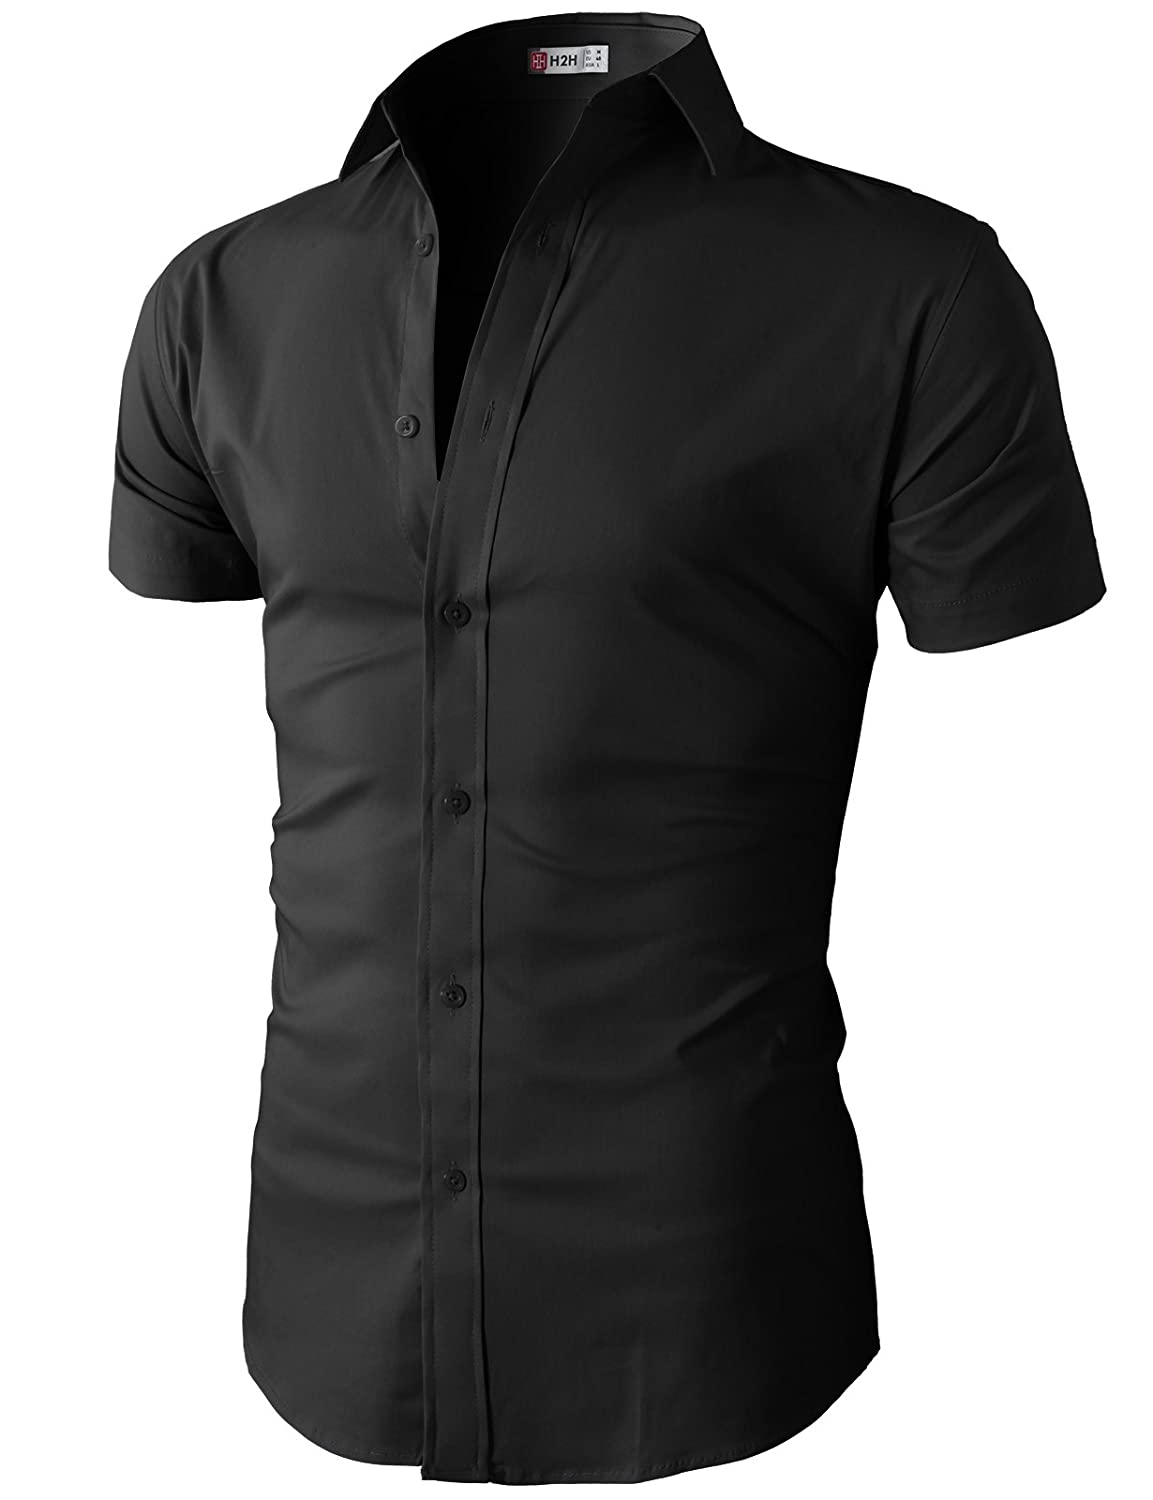 H2h Mens Casual Slim Fit Button Down Dress Shirts Short Sleeves